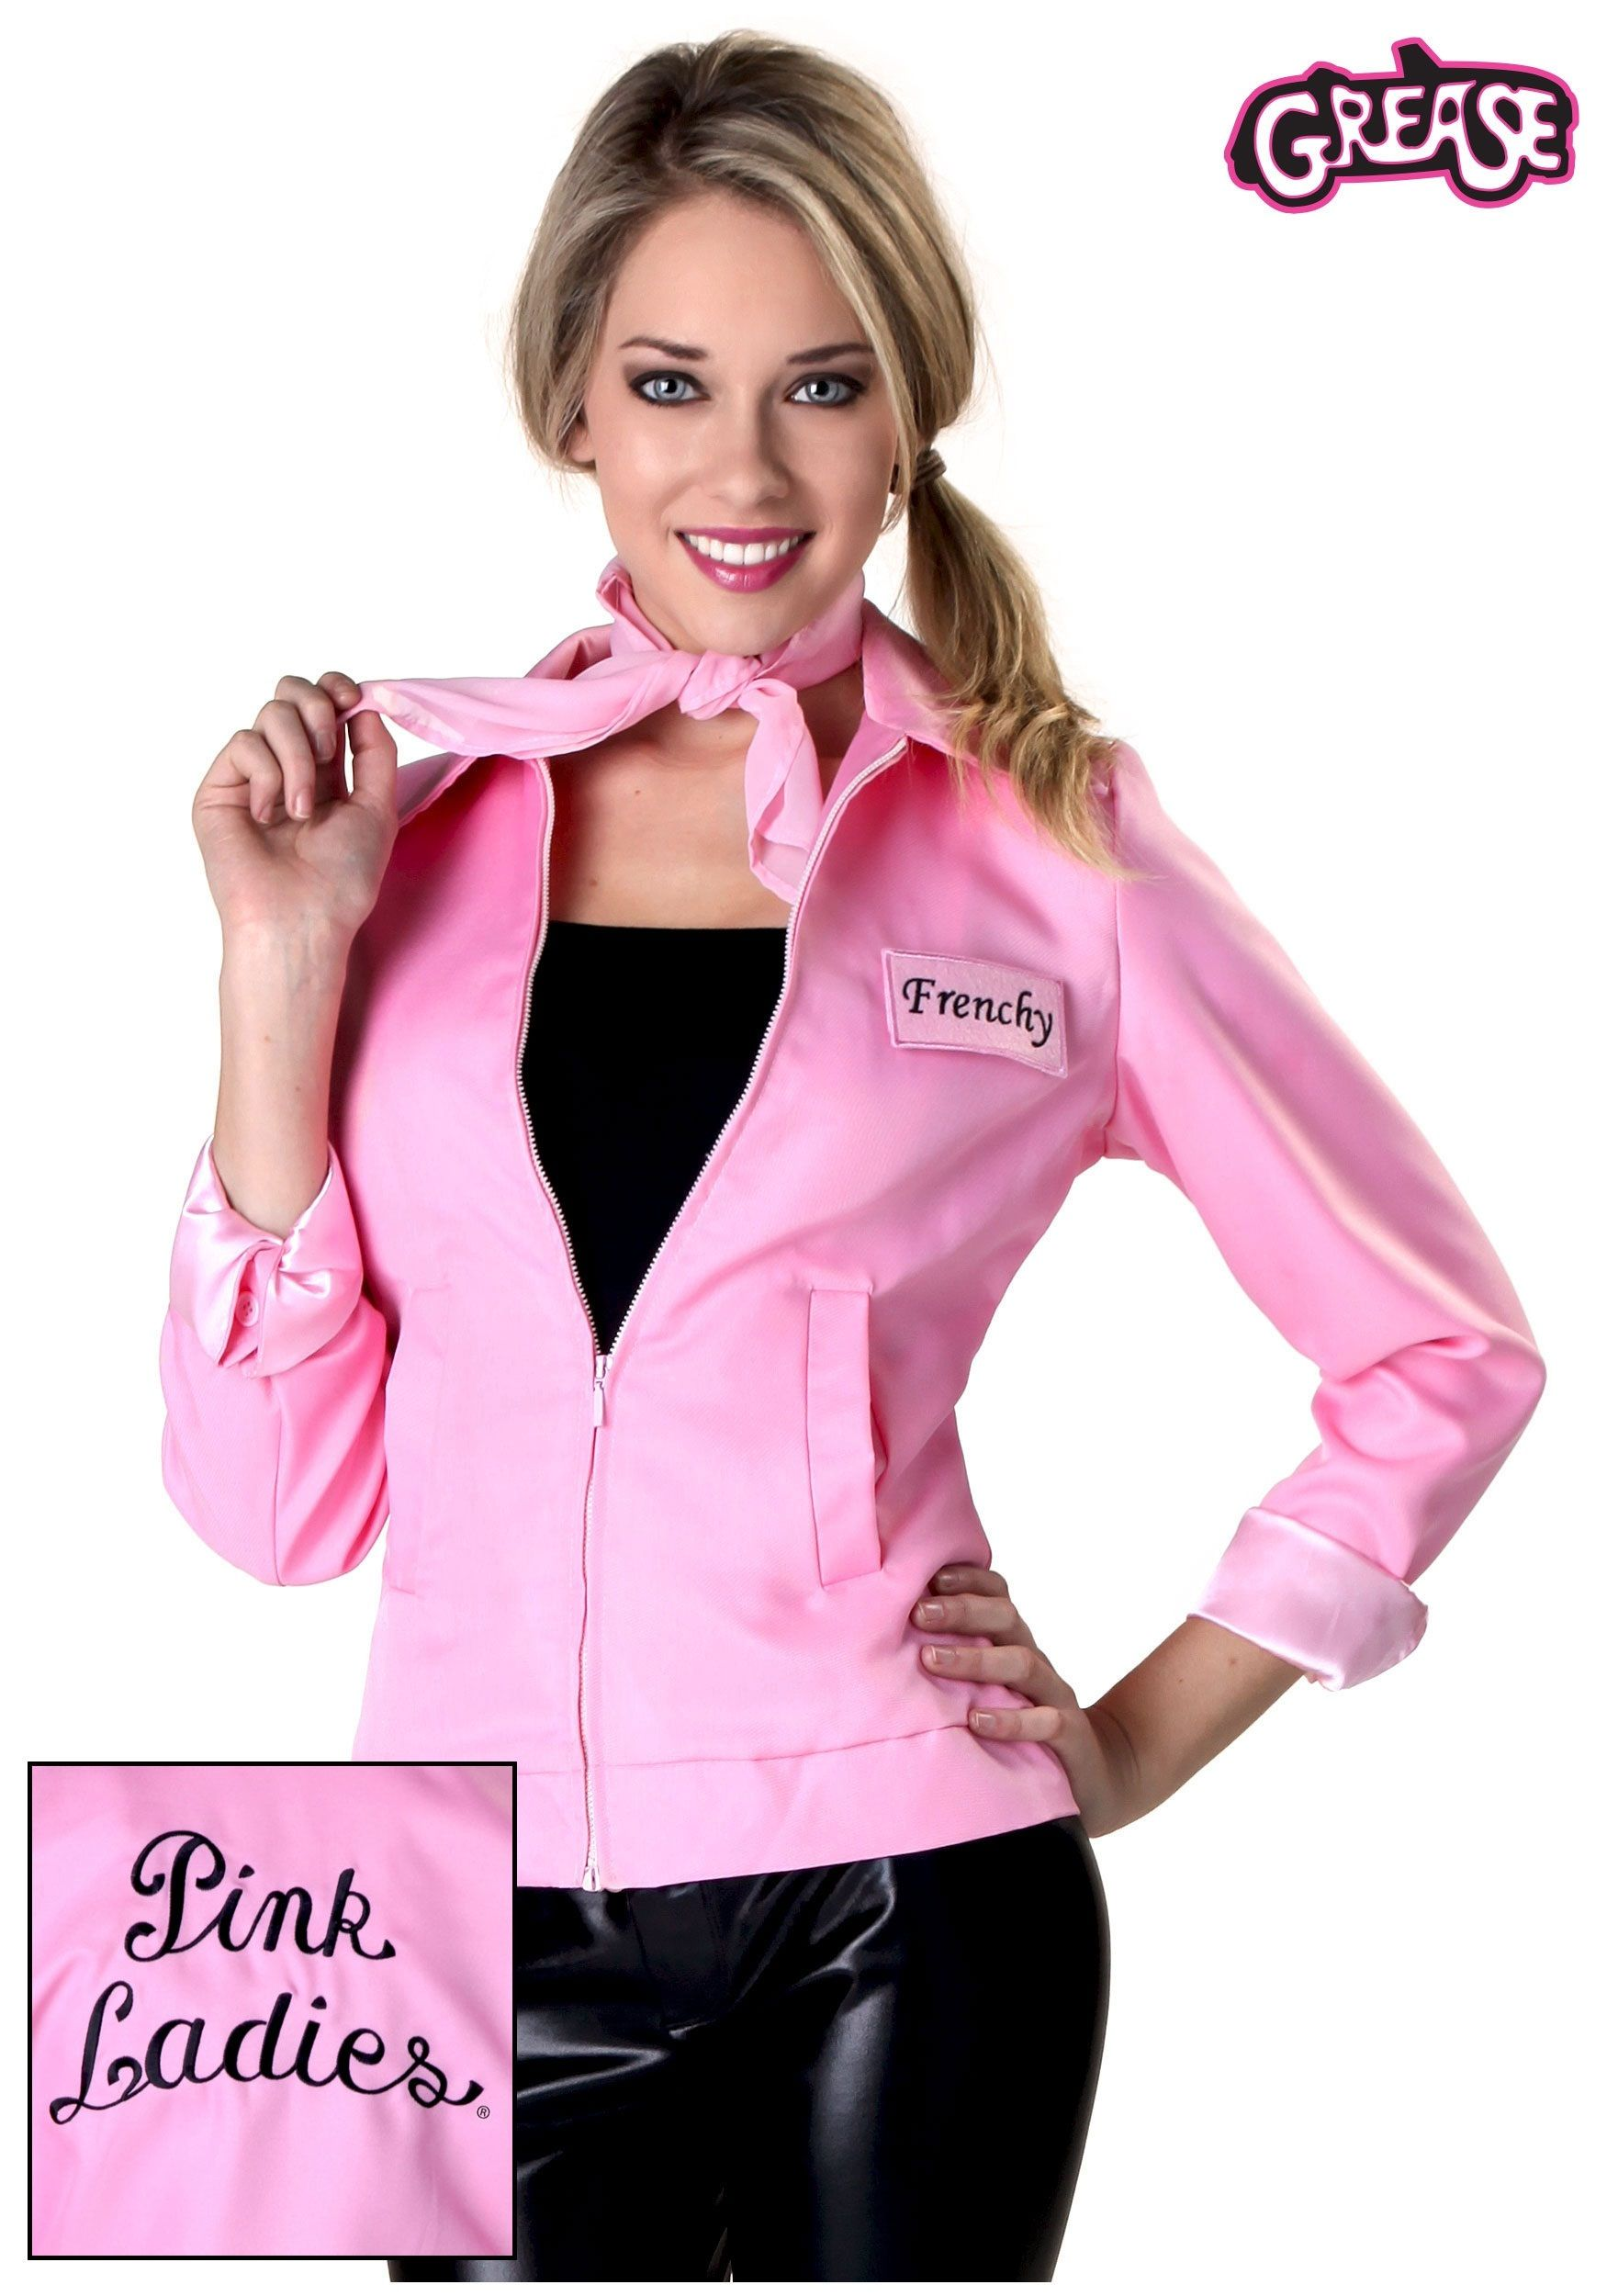 Authentic Grease Plus Size Pink Ladies Jacket | Celebrate dat shiz ...